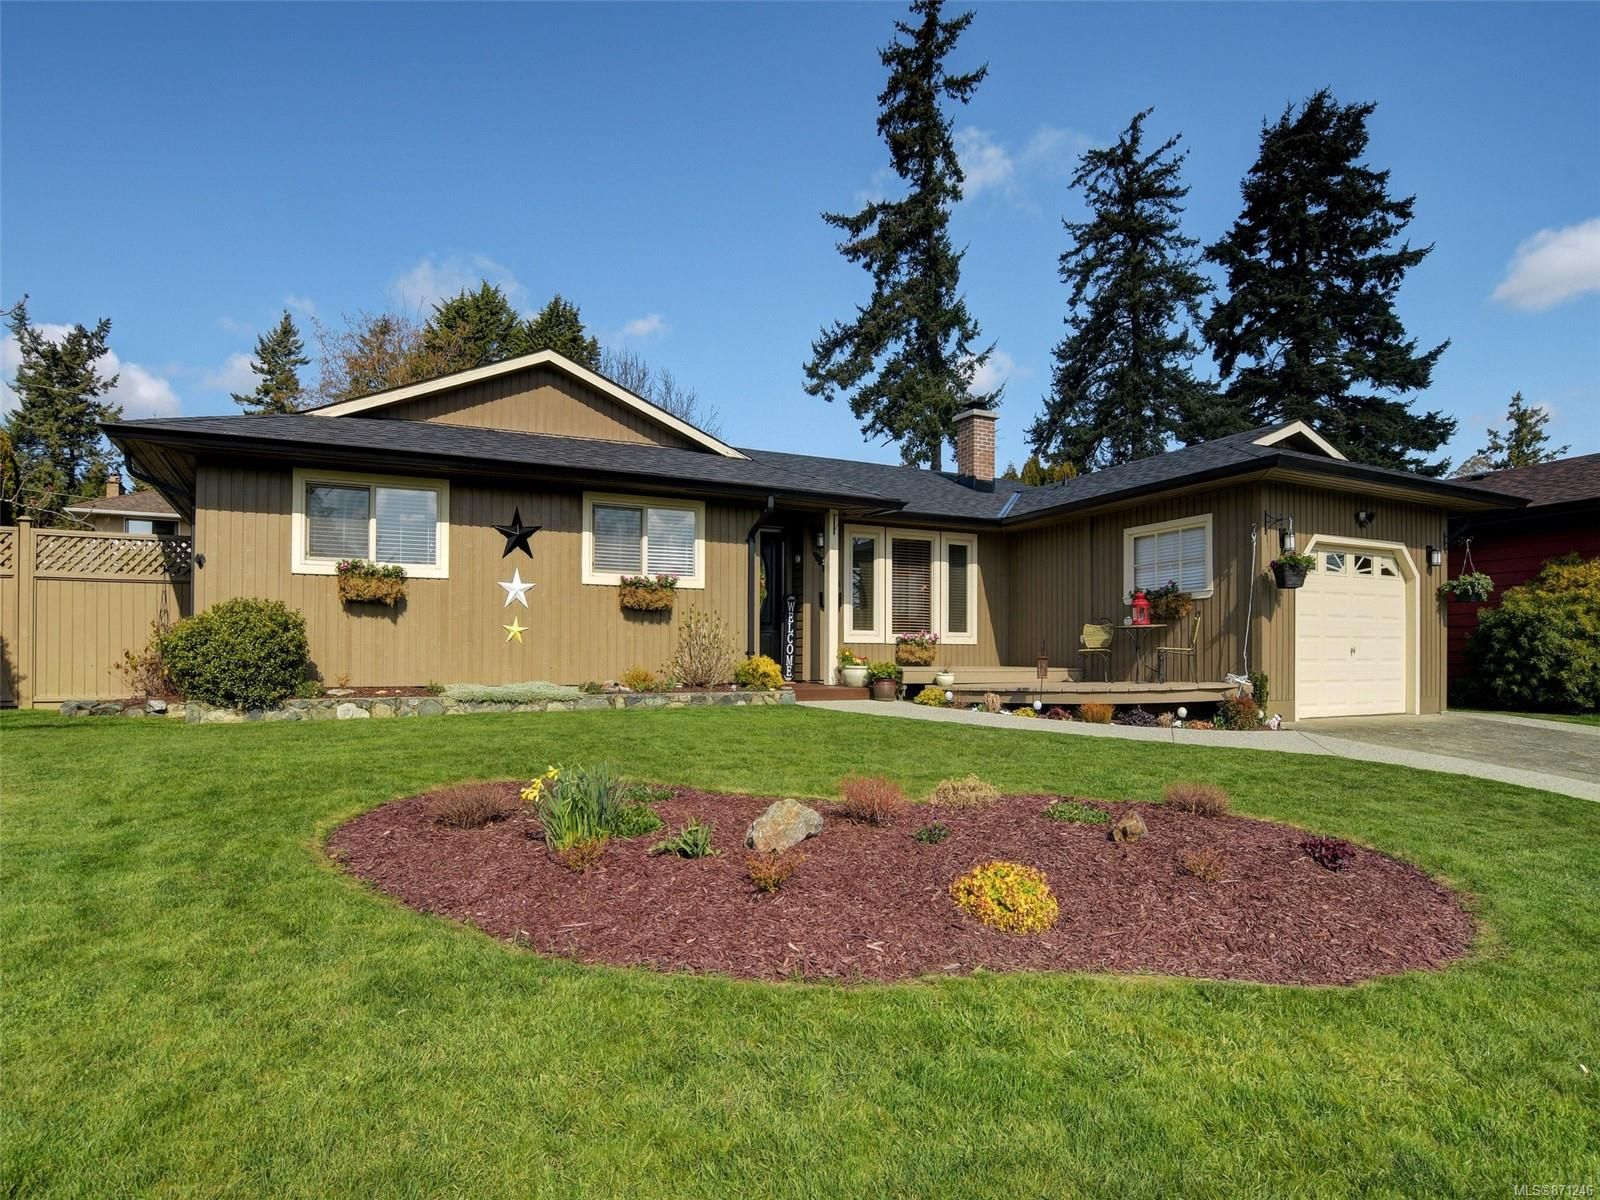 Main Photo: 113 Paddock Pl in : VR View Royal House for sale (View Royal)  : MLS®# 871246